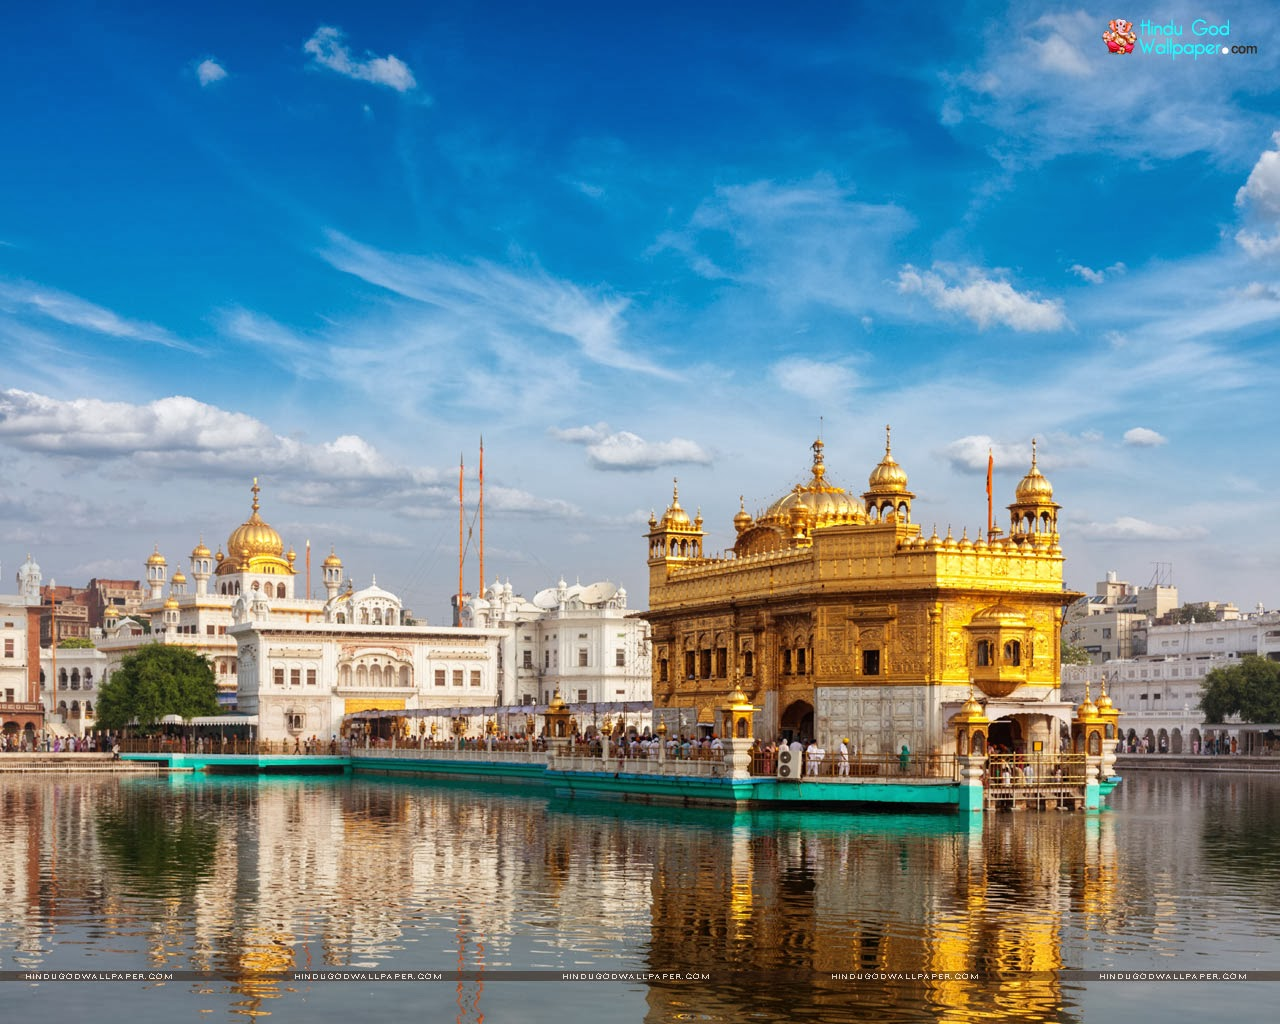 1280x1024px golden temple hd wallpaper - wallpapersafari